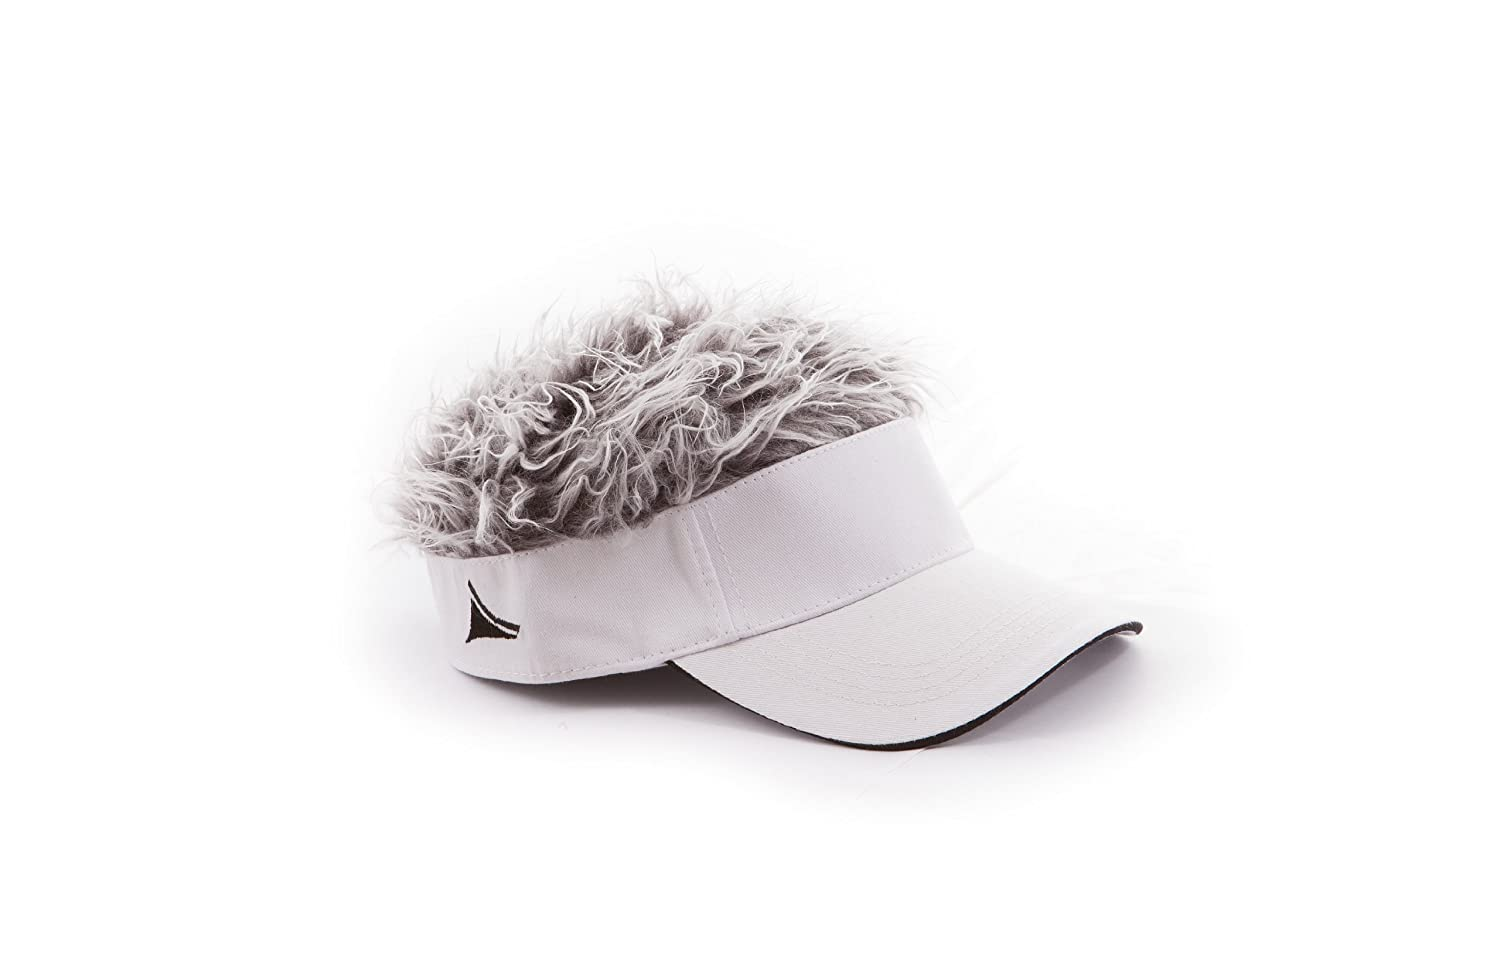 Flair Hair Visor with Grey Hair (White) Concept One FHVSWG-White/Grey